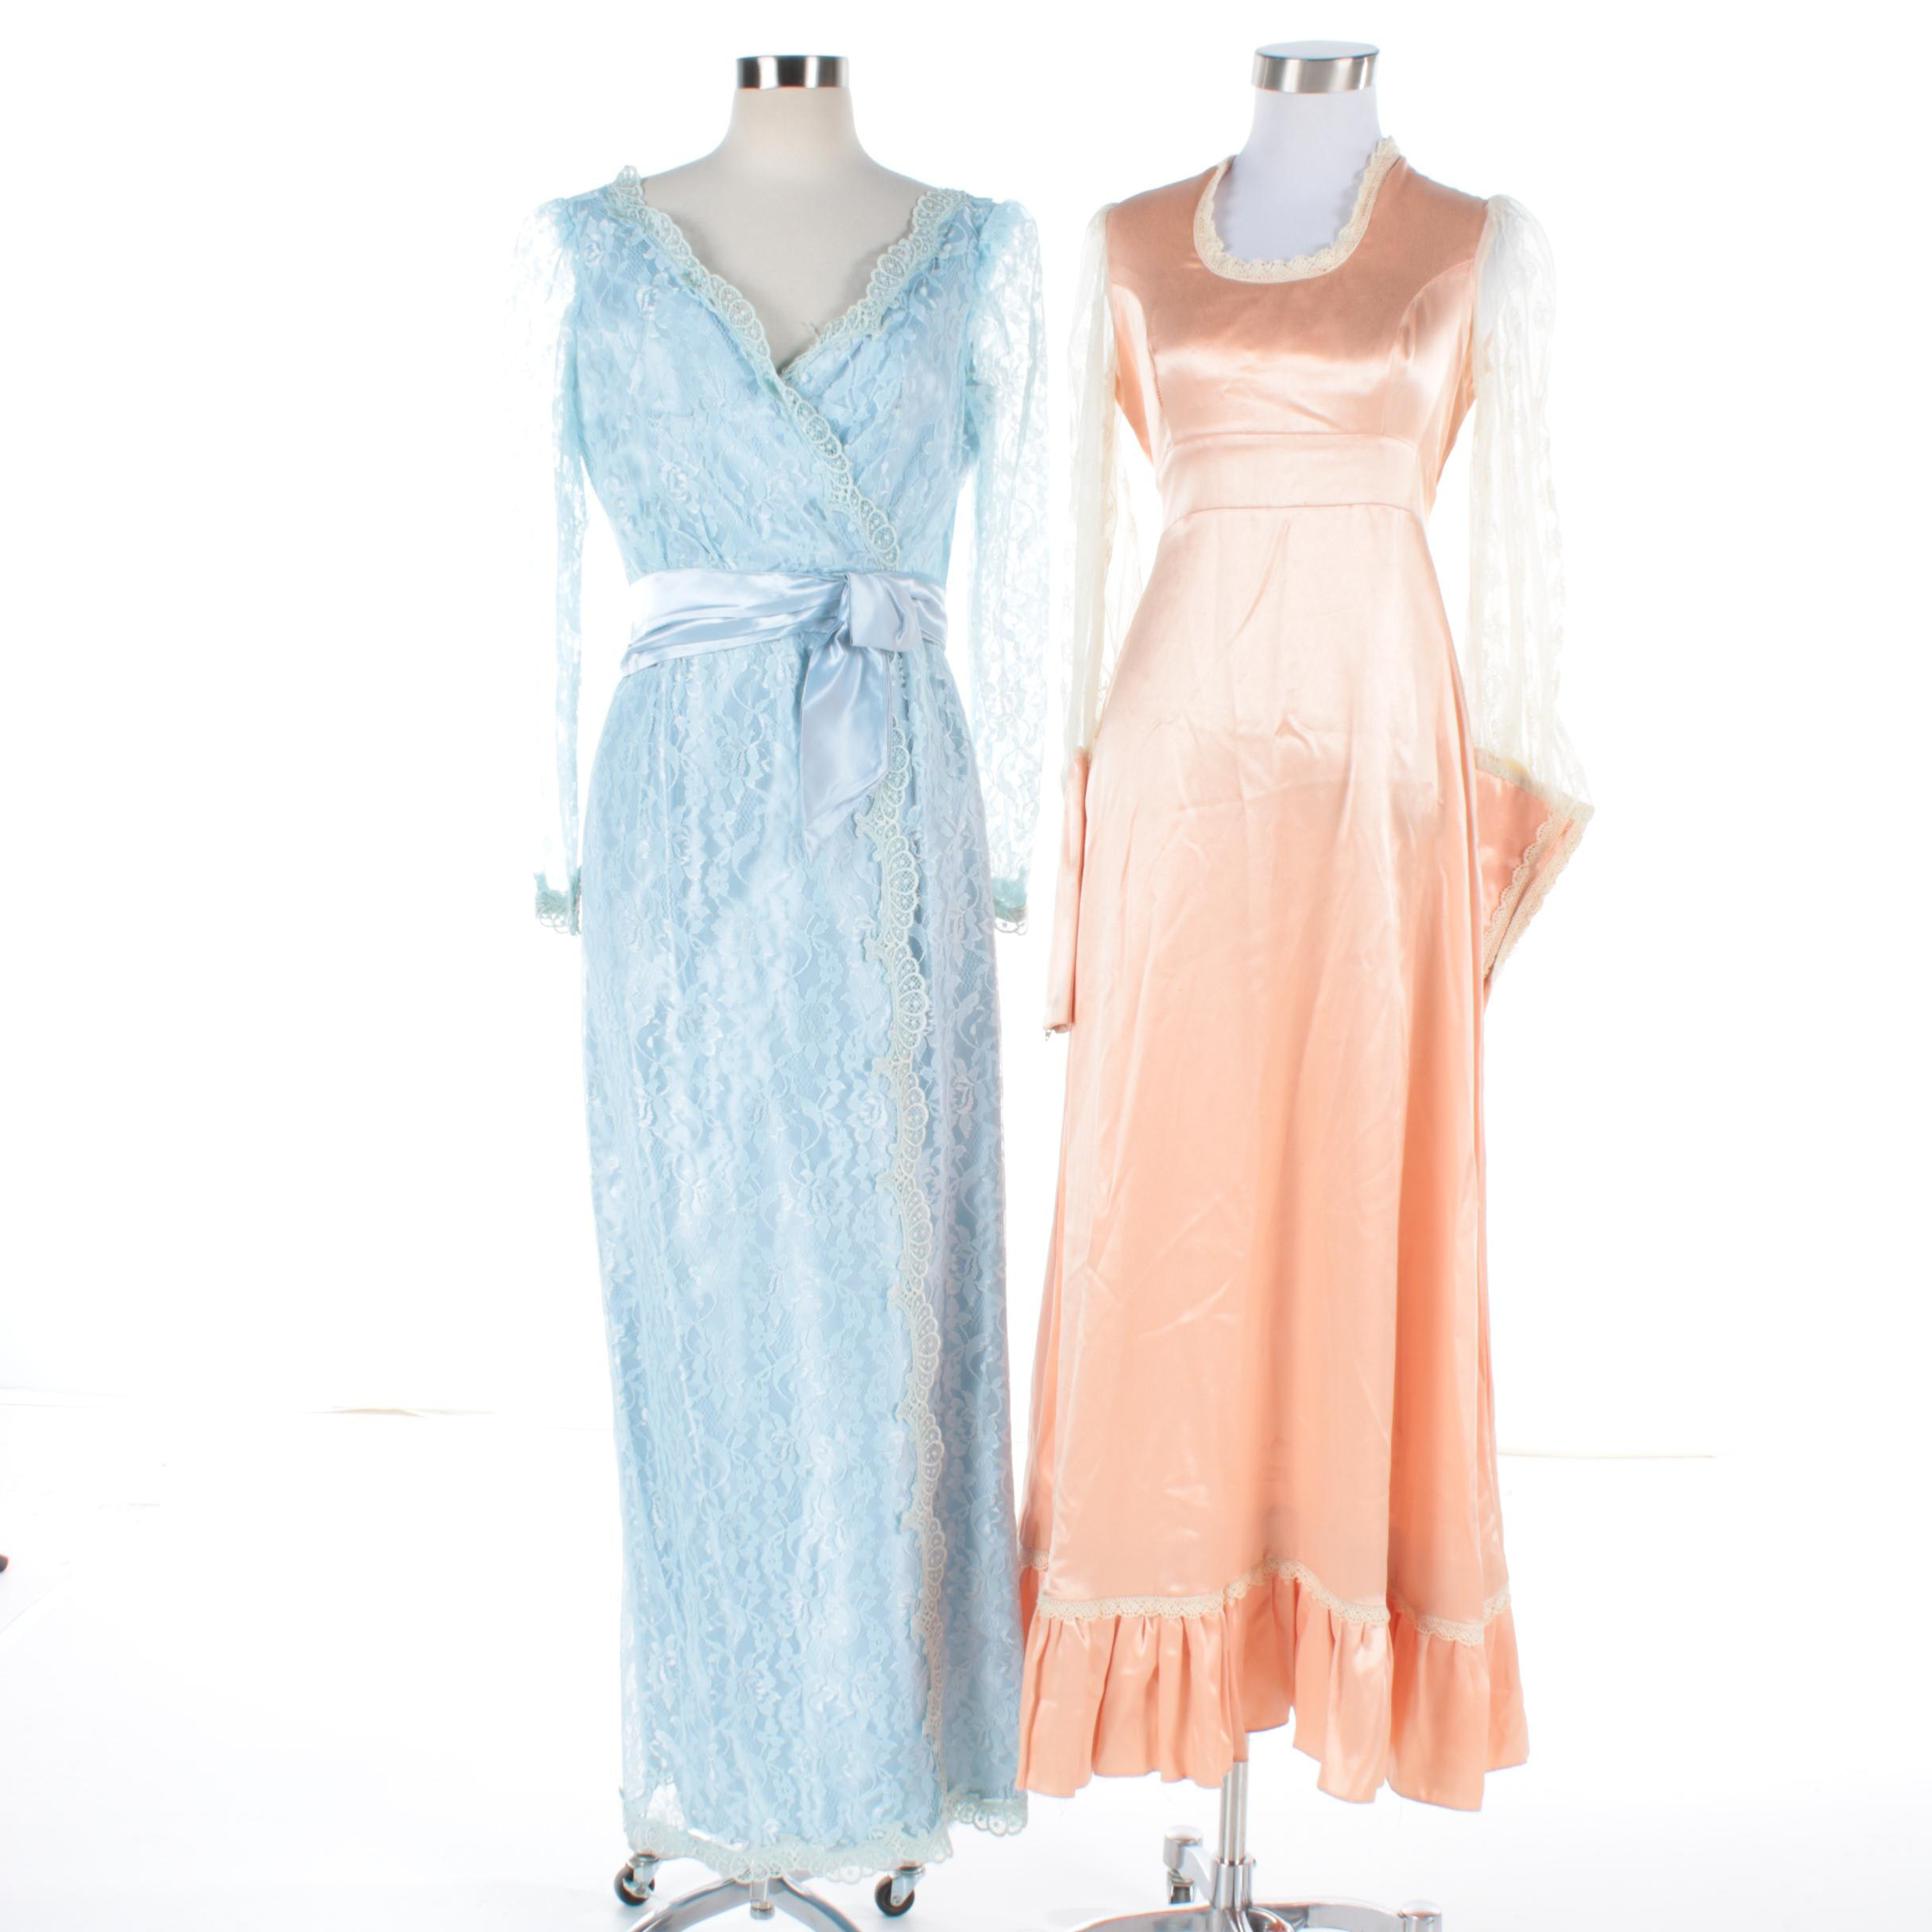 Vintage Lace and Satin Formal Dresses